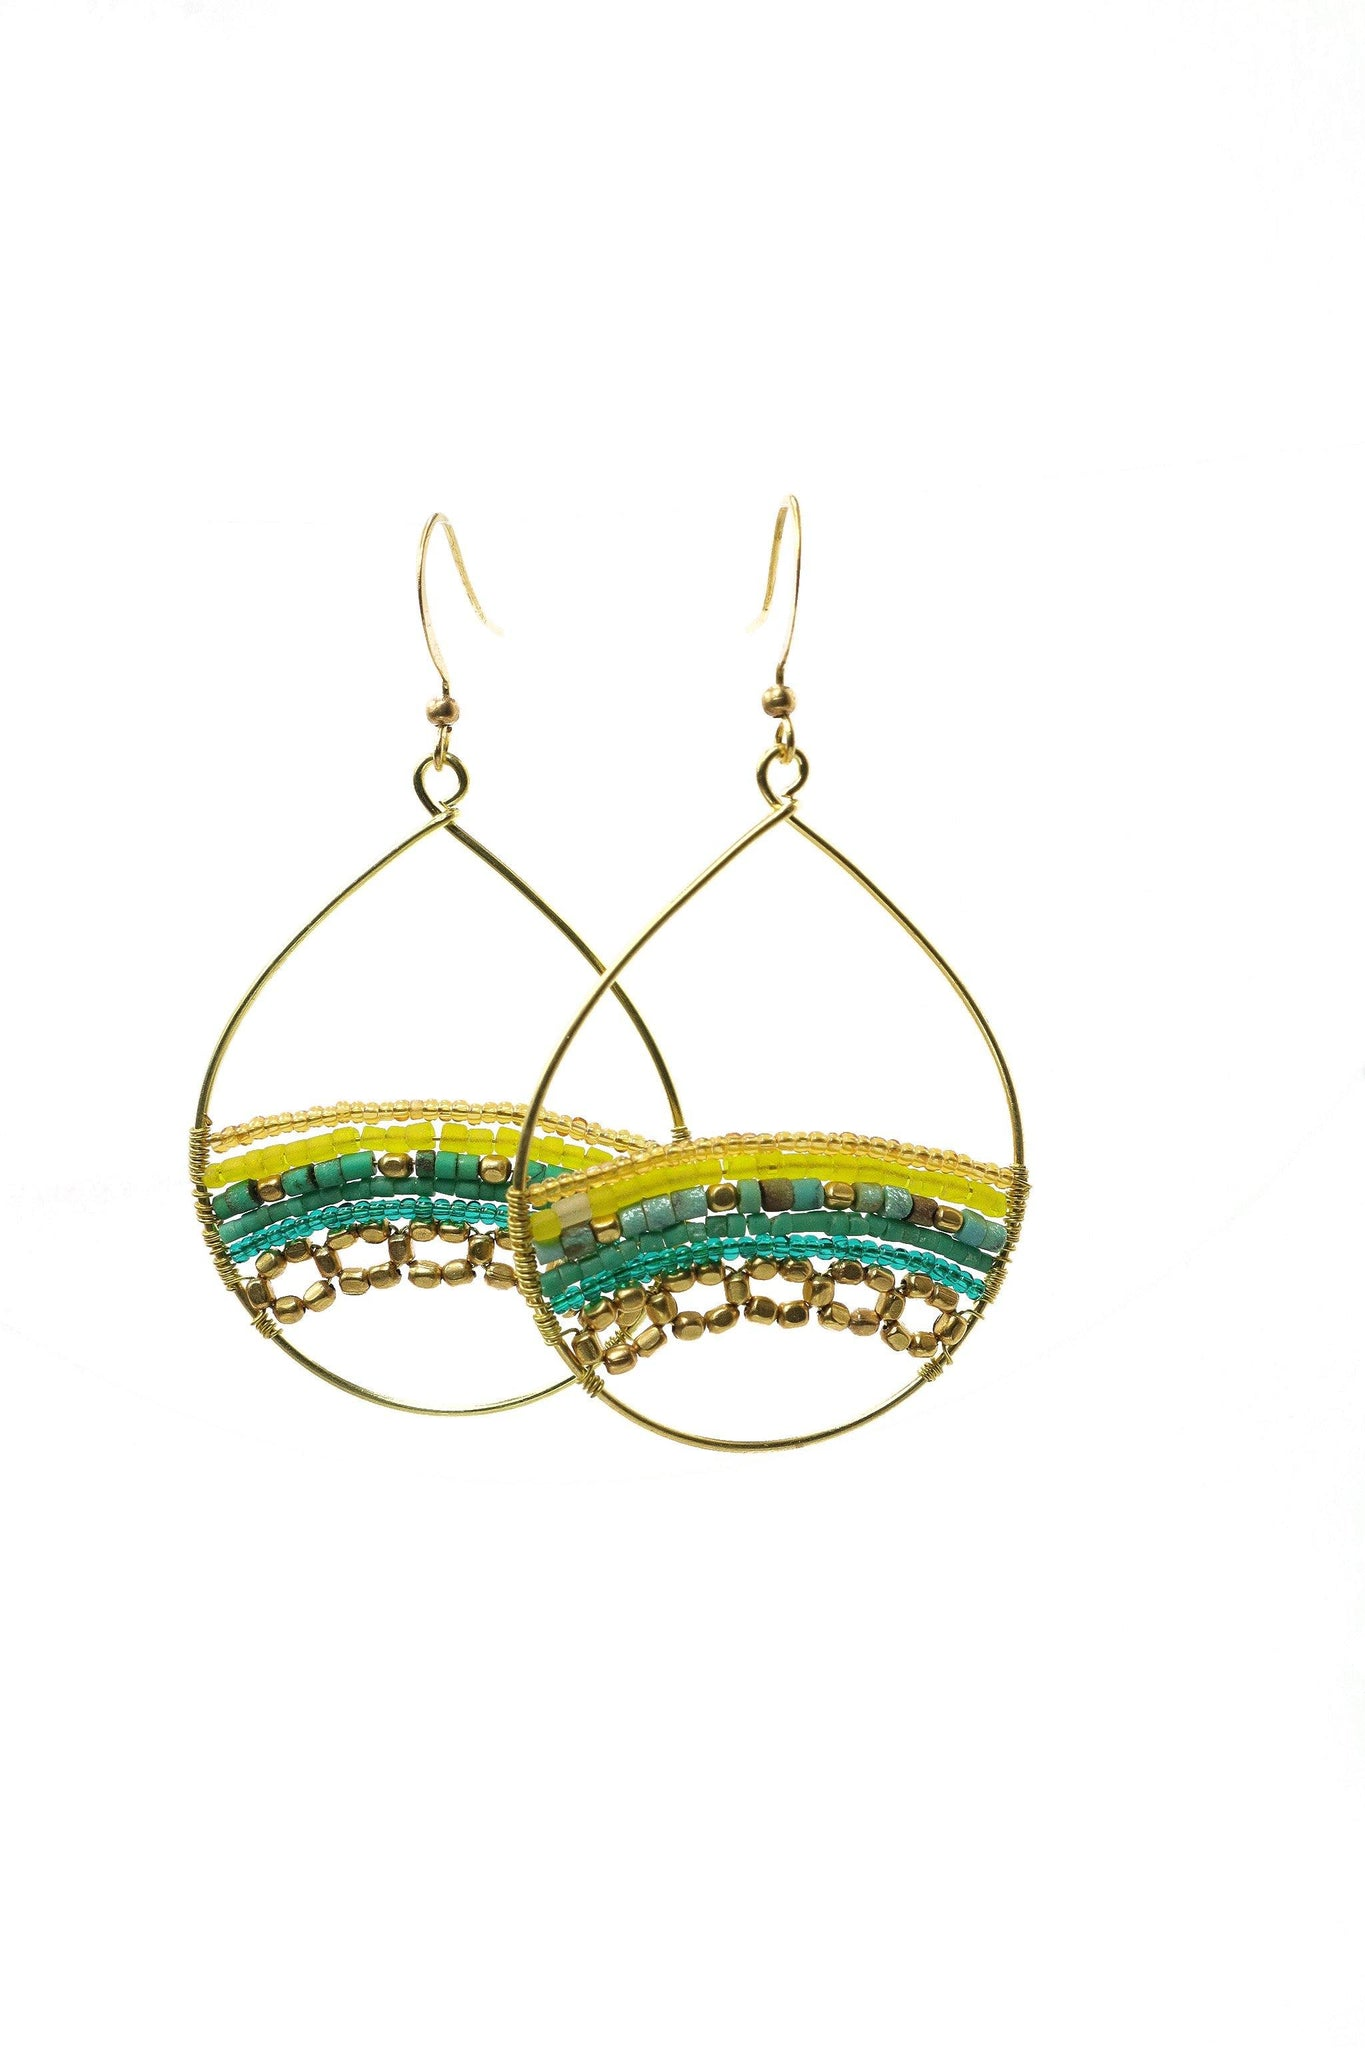 These are a statement teardrop beaded earring in green. They feature Afghani style tube beads, brass and acrylic beads. They are handmade with love in Thailand. This is a Fairtrade Product.